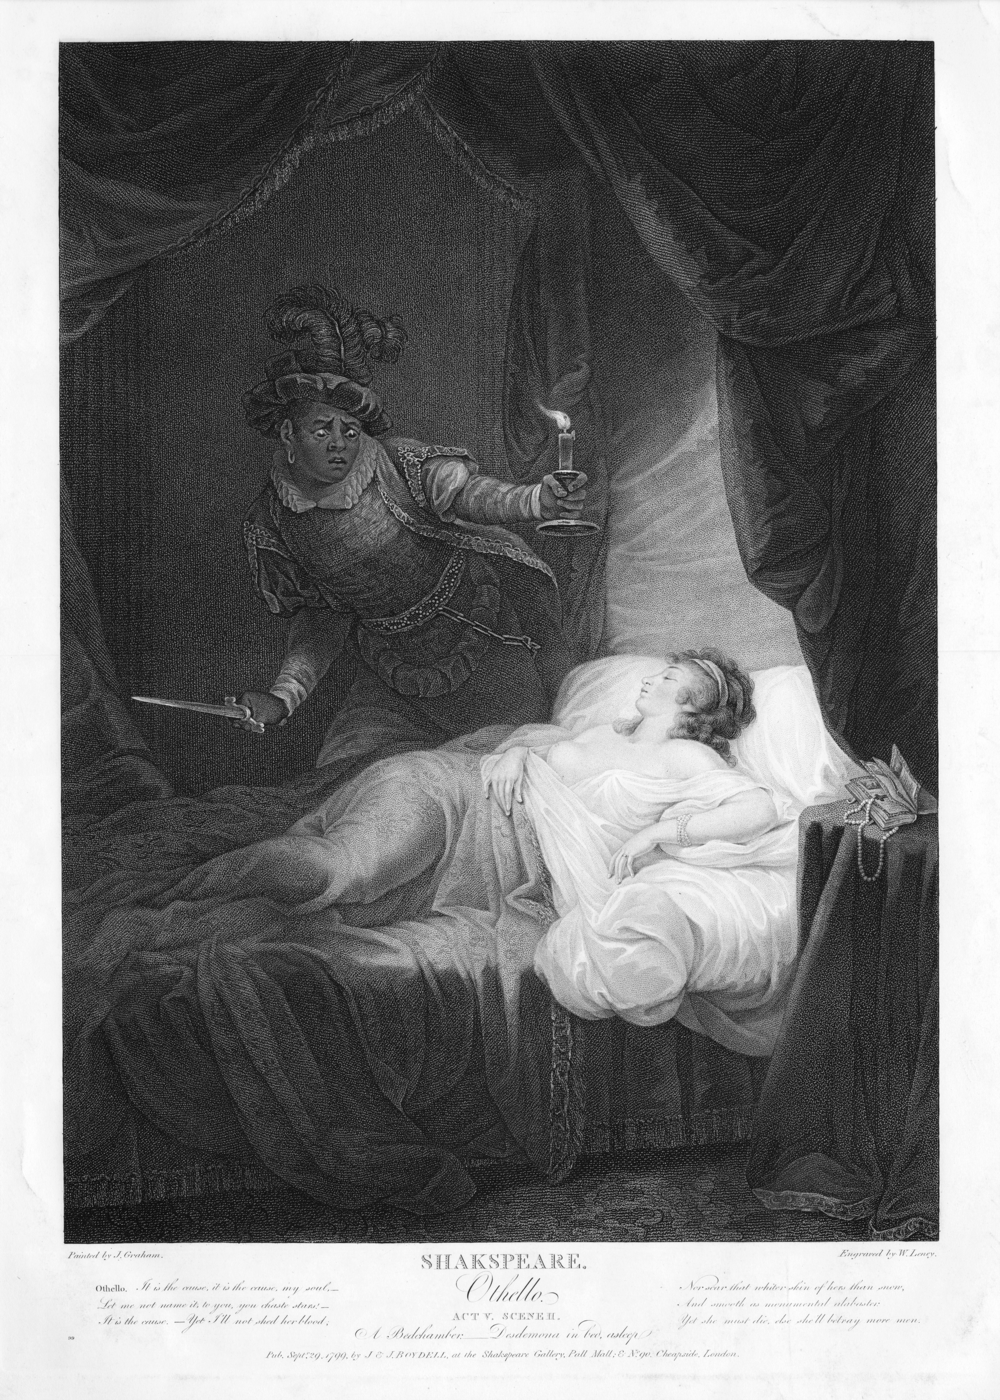 """""""Shakspeare; Othello; Act V, Scene II; A bedchamber; Desdemona in bed asleep"""", by J. D. Graham, 1799. This public domain print appears courtesy the New York Public Library Digital Collections."""